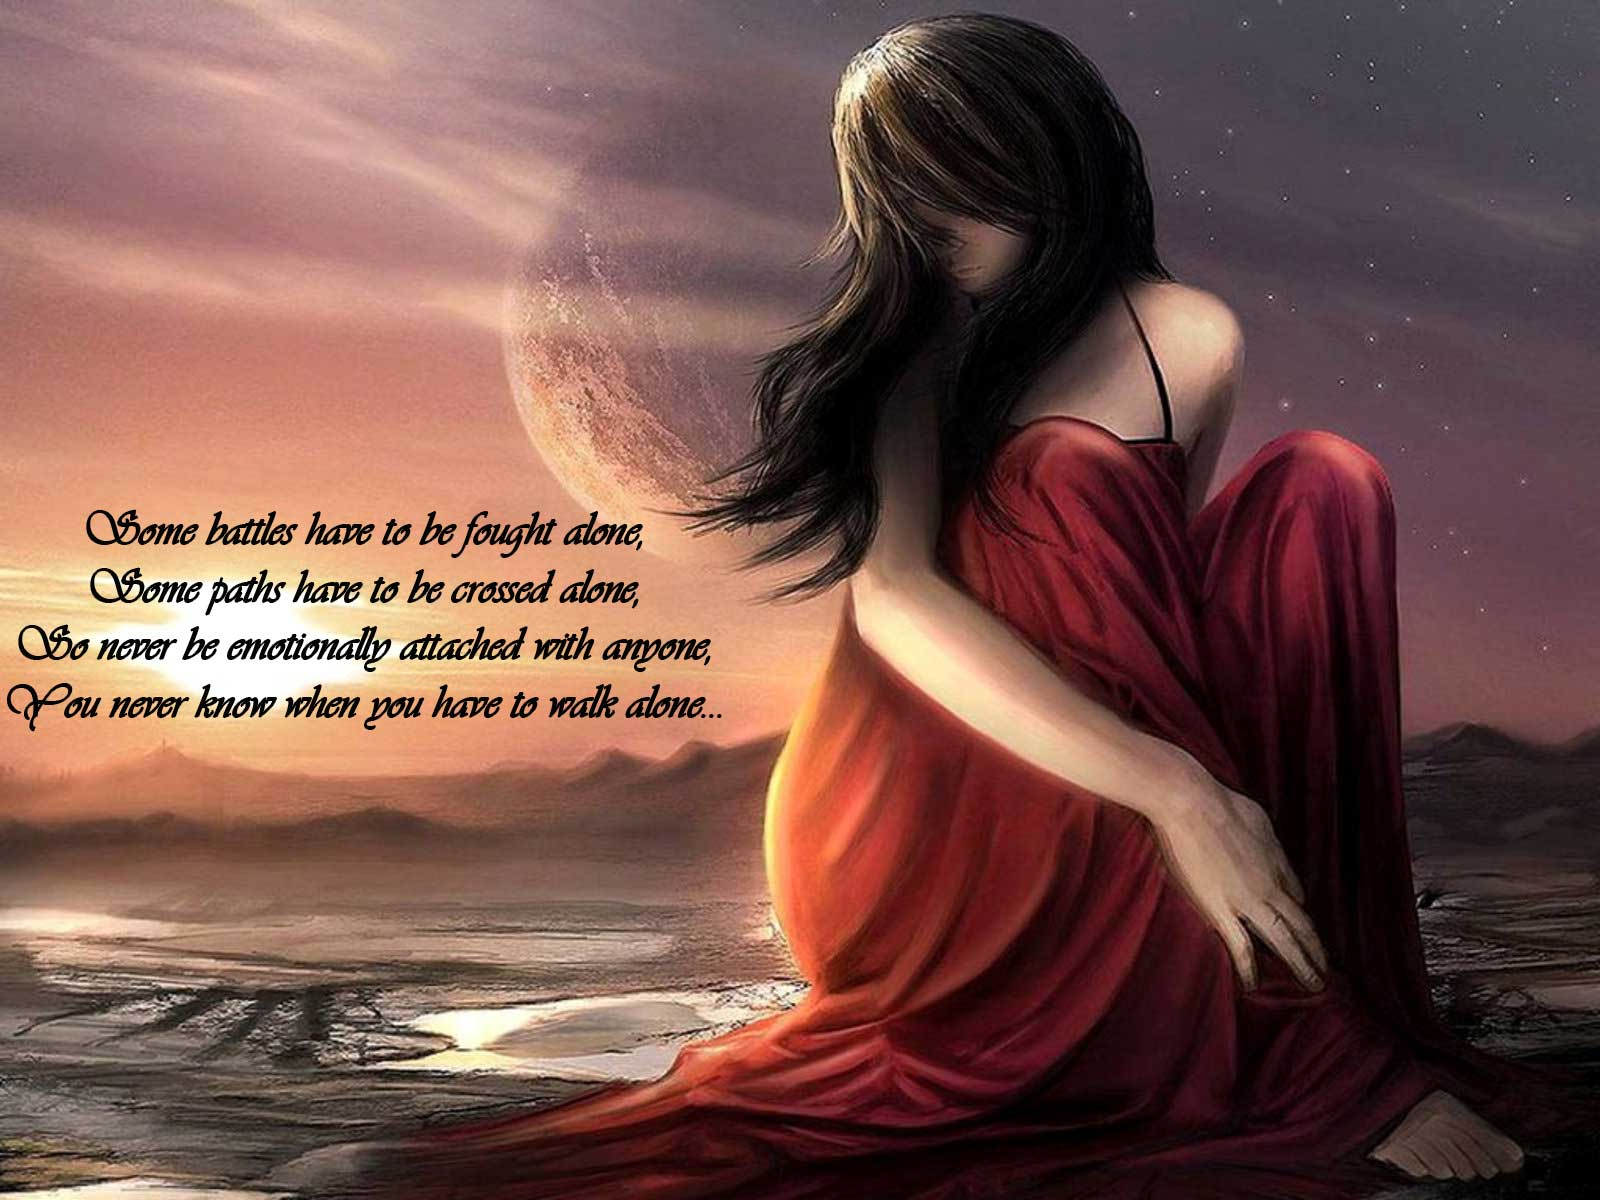 Free Download 30 HD Sad Wallpapers With Quotes